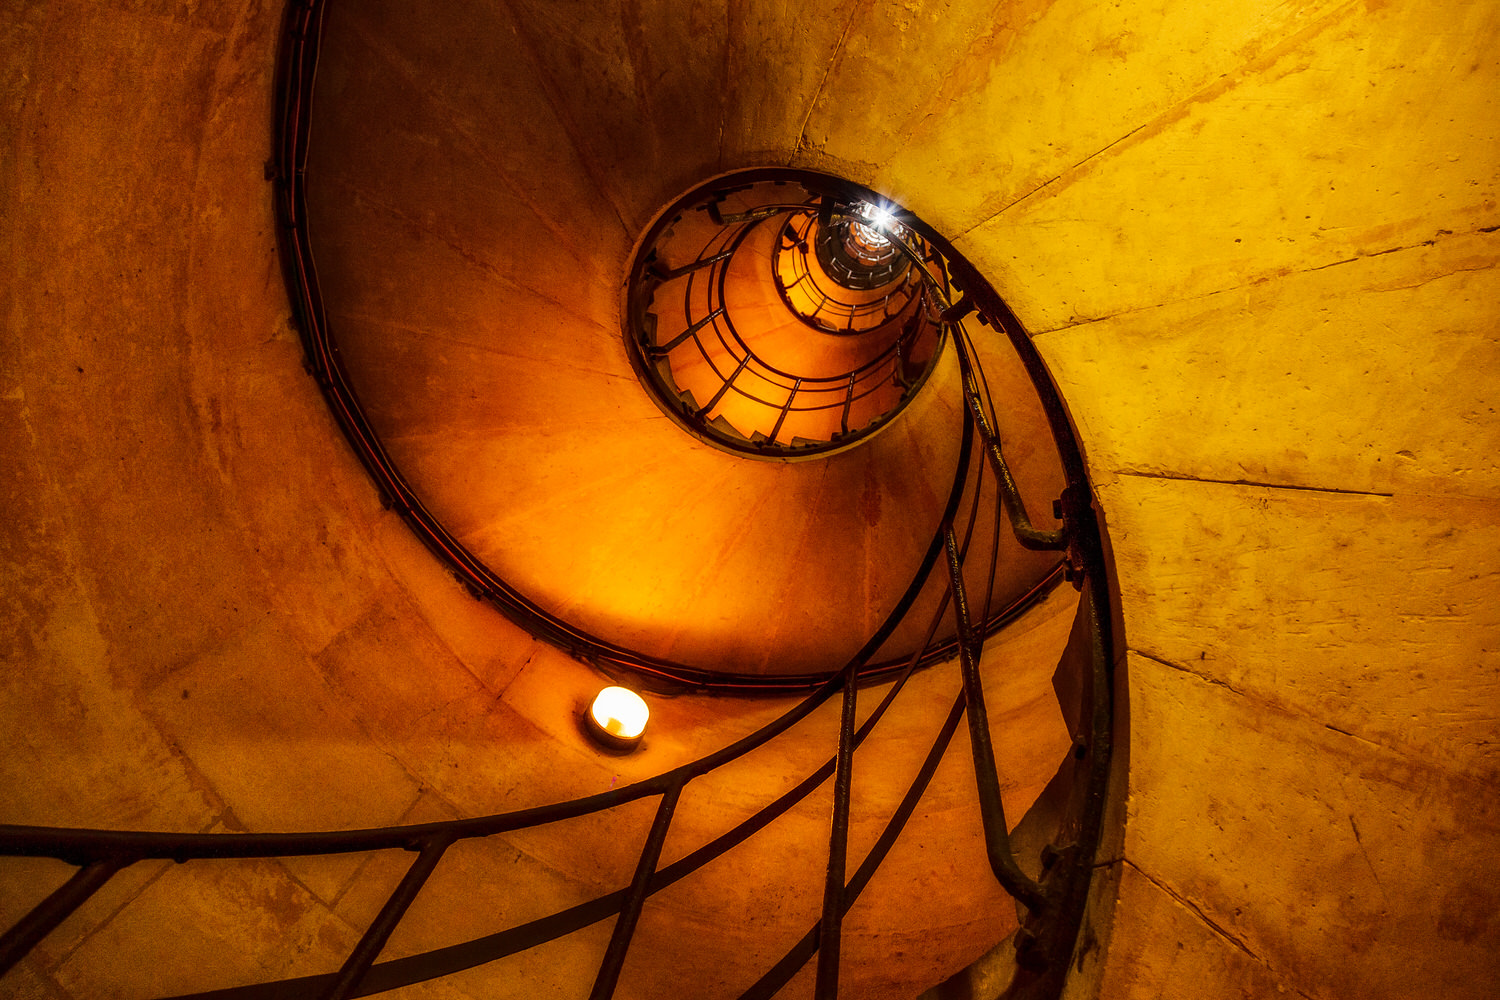 A    worms eye viewpoint    provides a dramatic perspective of the stairwell that leads up to the top of the    Arc de Triomphe    in Paris, France. This photo was made with the very capable    Canon 5D Mark II camera   .